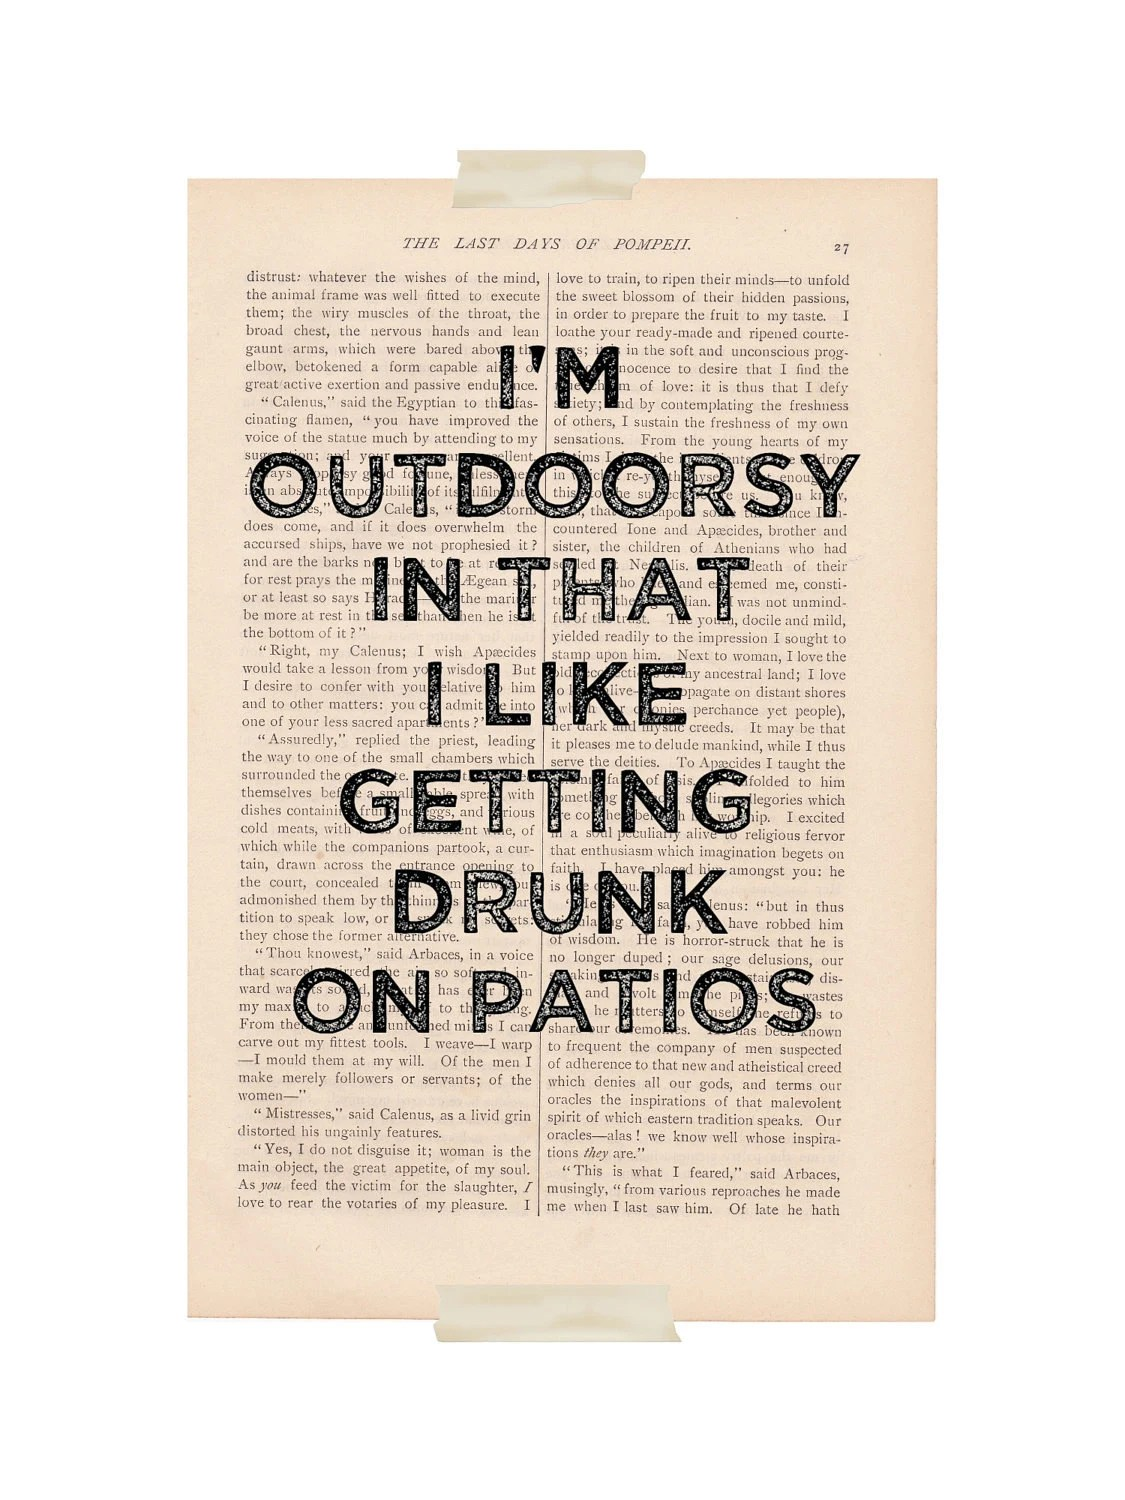 dictionary art vintage I'm OUTDOORSY In That I Like Getting DRUNK on PATIOS - vintage book page print - funny quote dictionary art - ExLibrisJournals